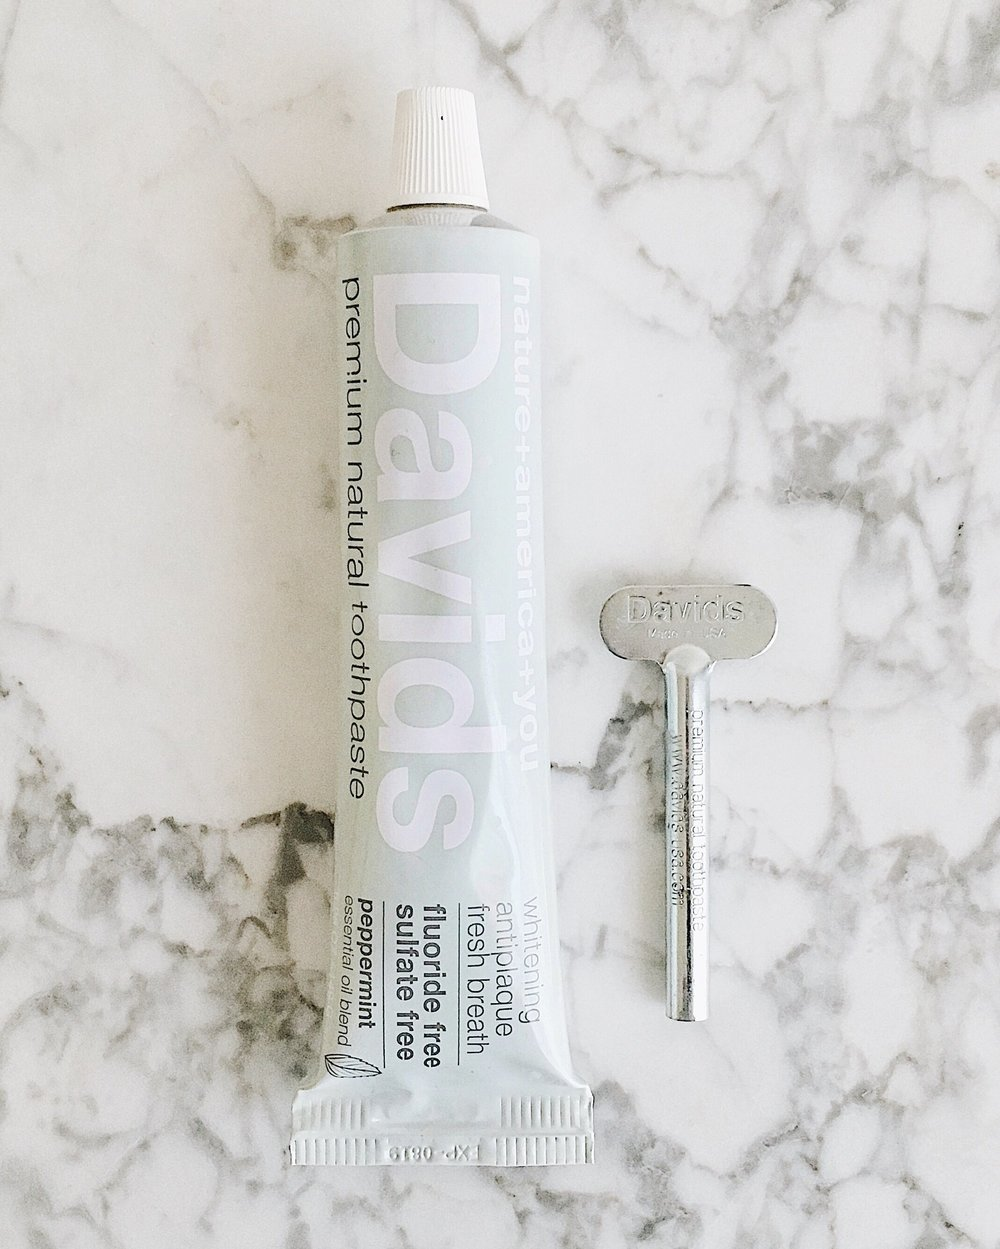 Peppermint Toothpaste by David's